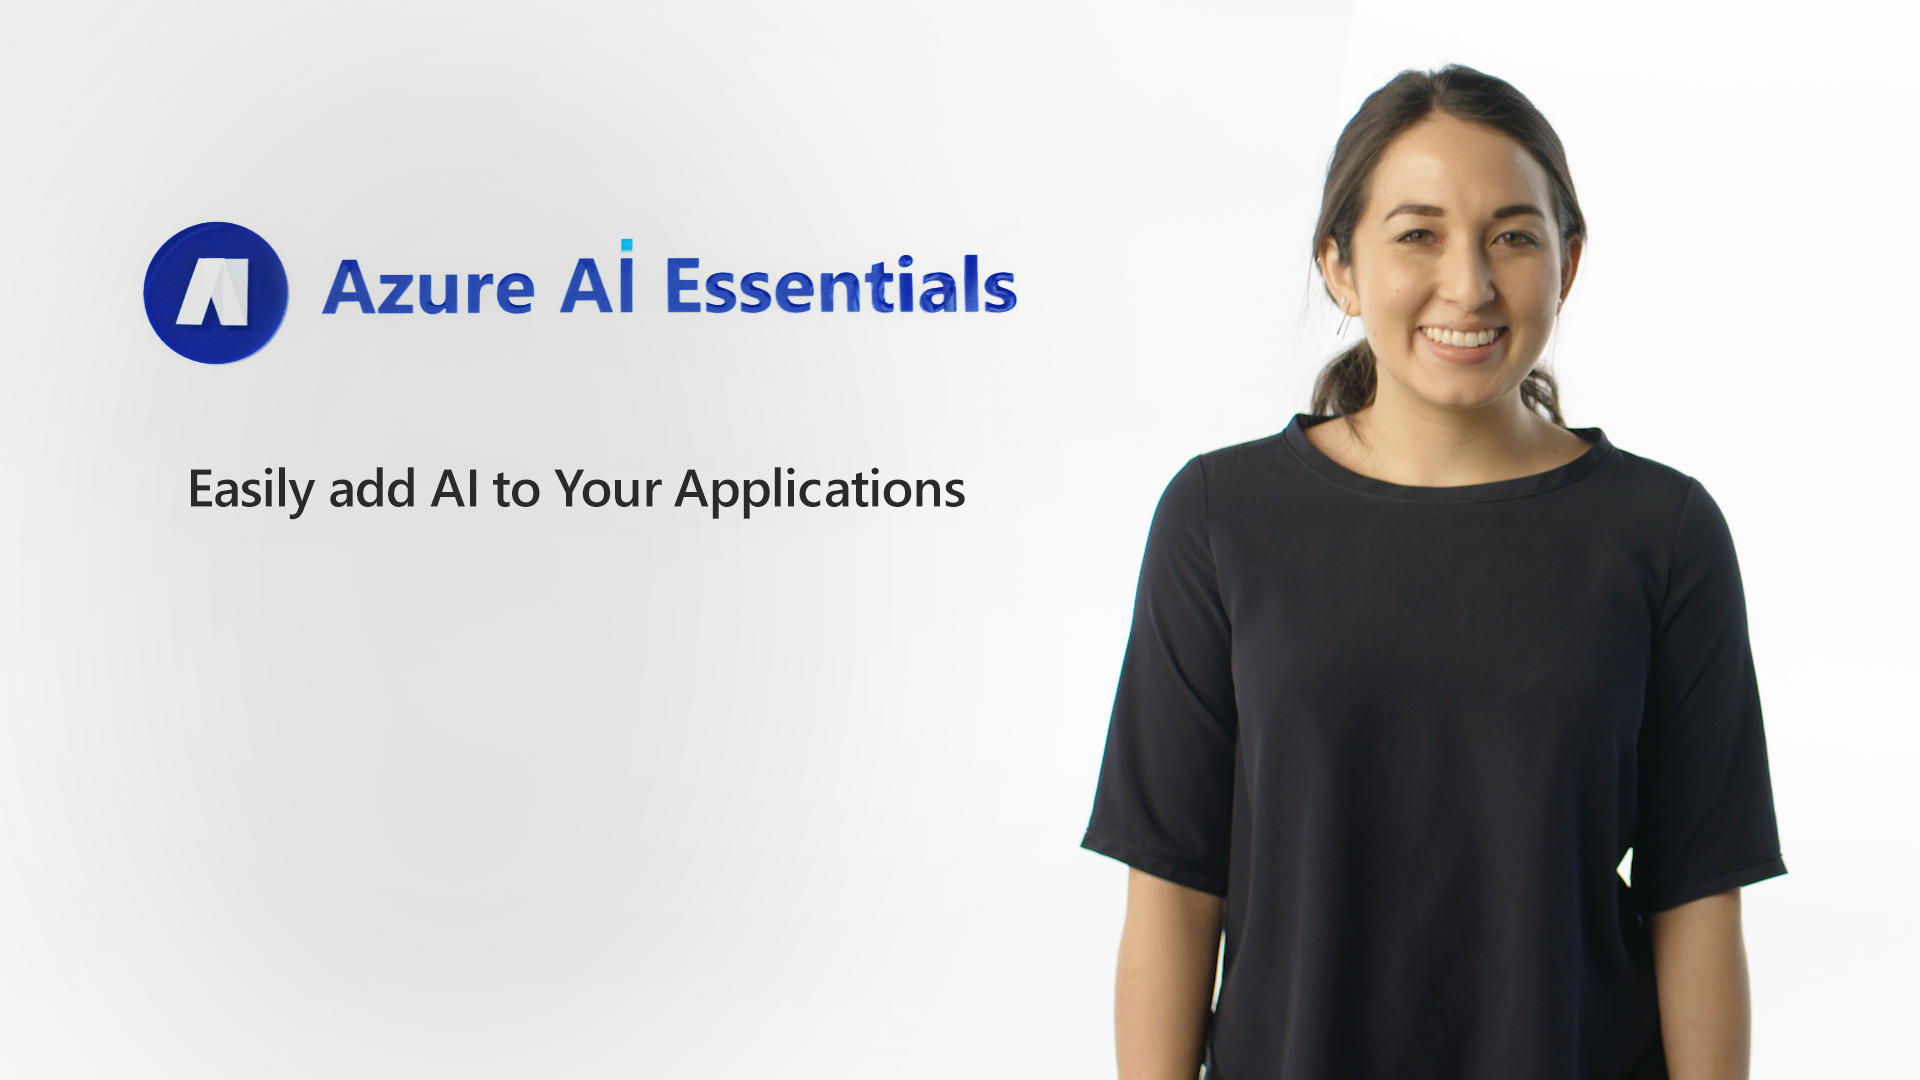 Easily add AI to Your Applications